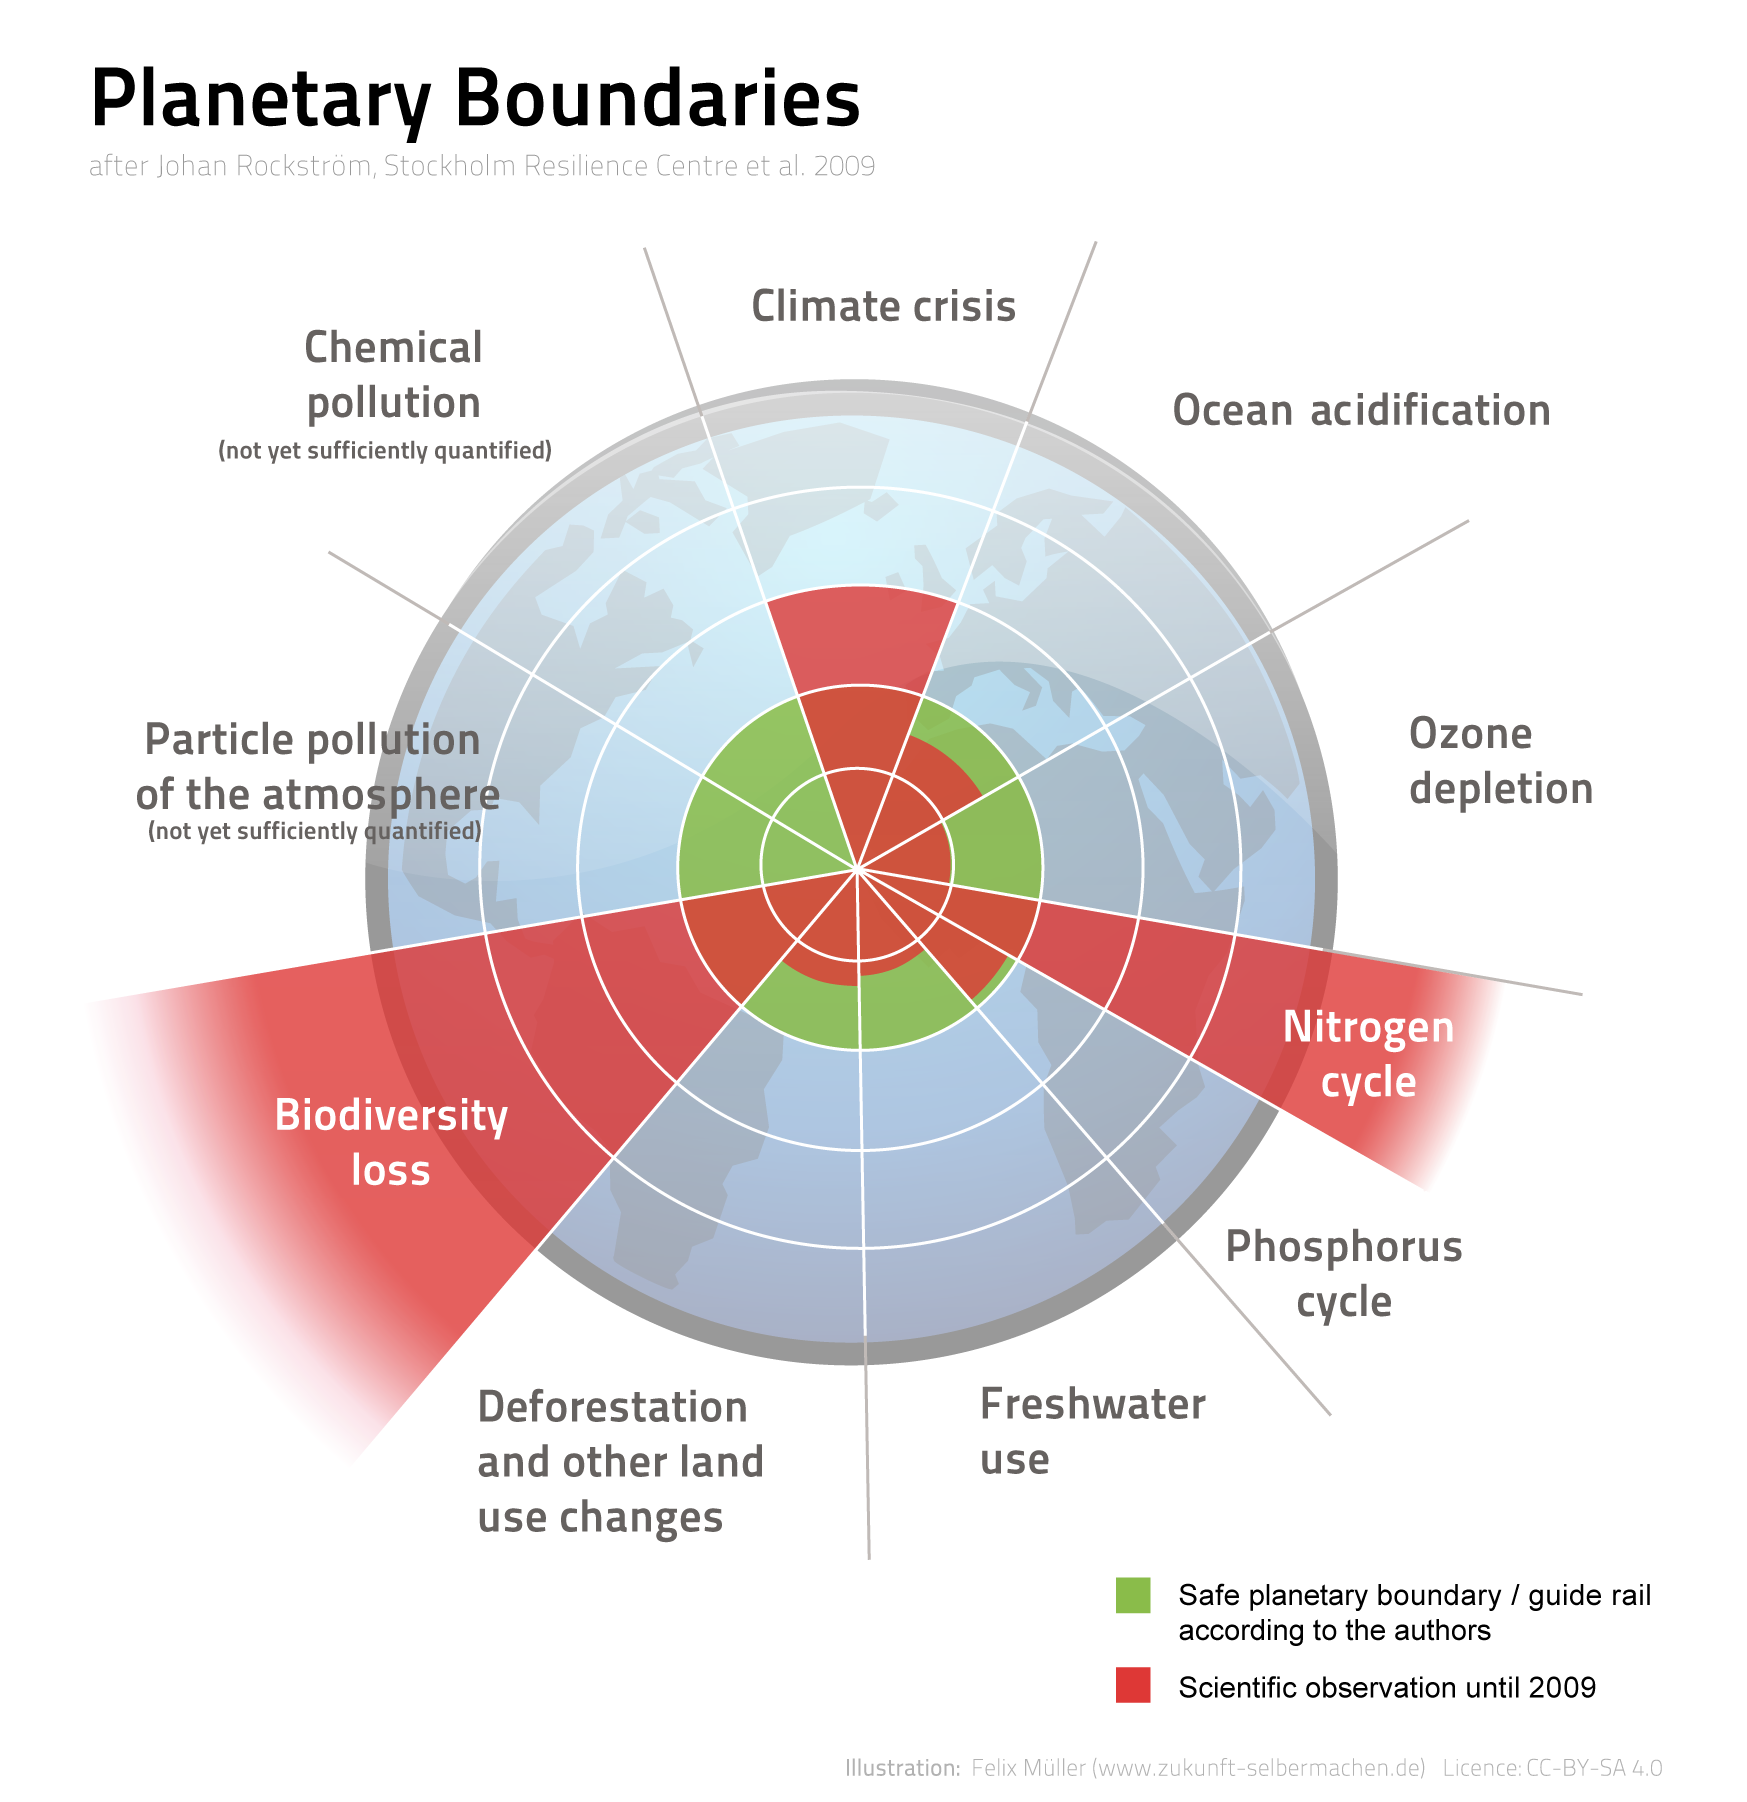 Scheme for planetary boundaries